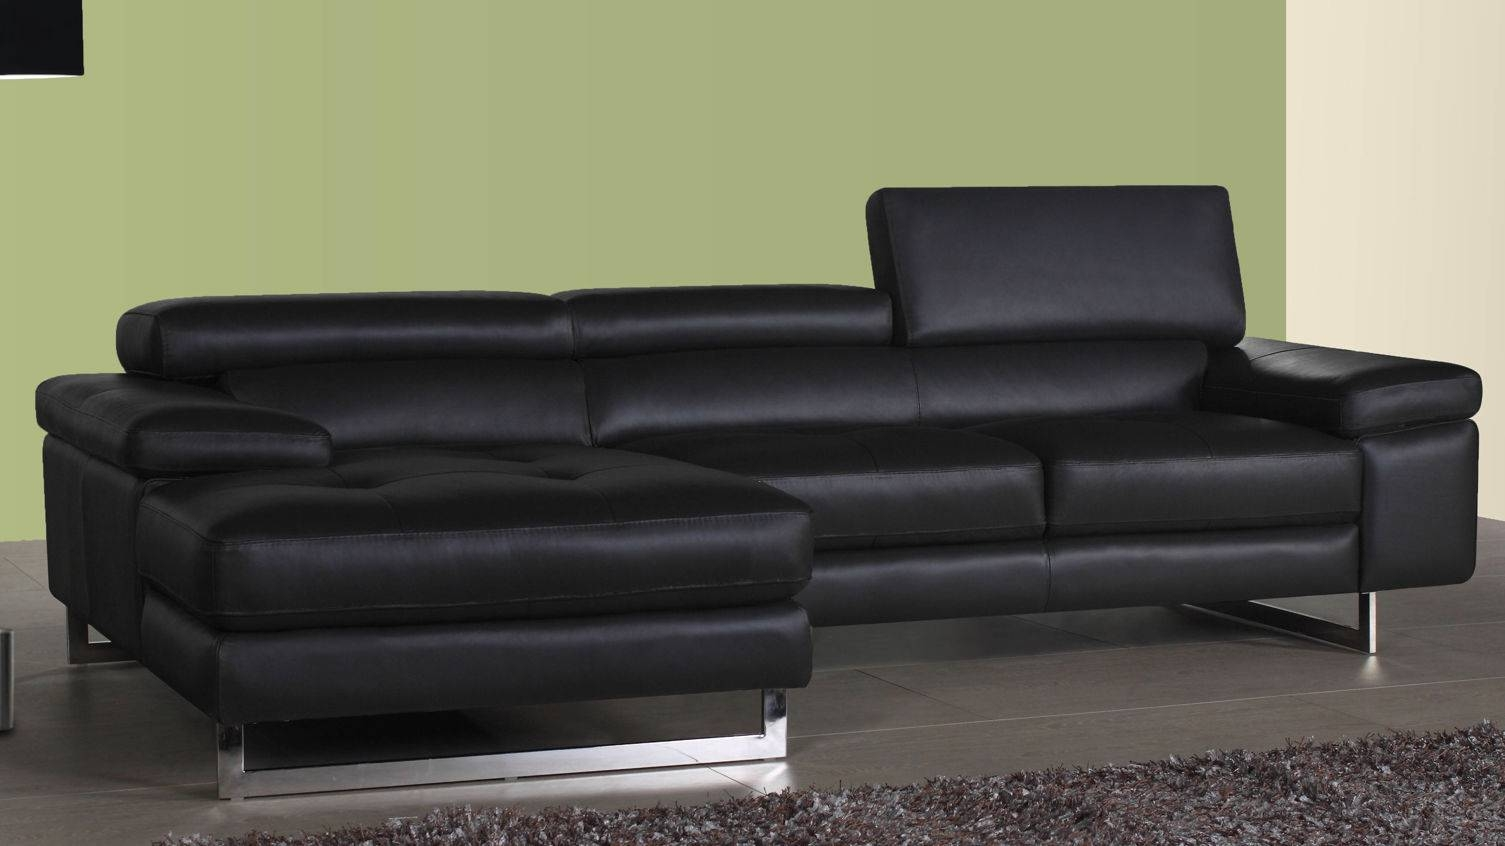 Leather Corner Sofa Chaise | Tehranmix Decoration throughout Contemporary Black Leather Sofas (Image 15 of 30)